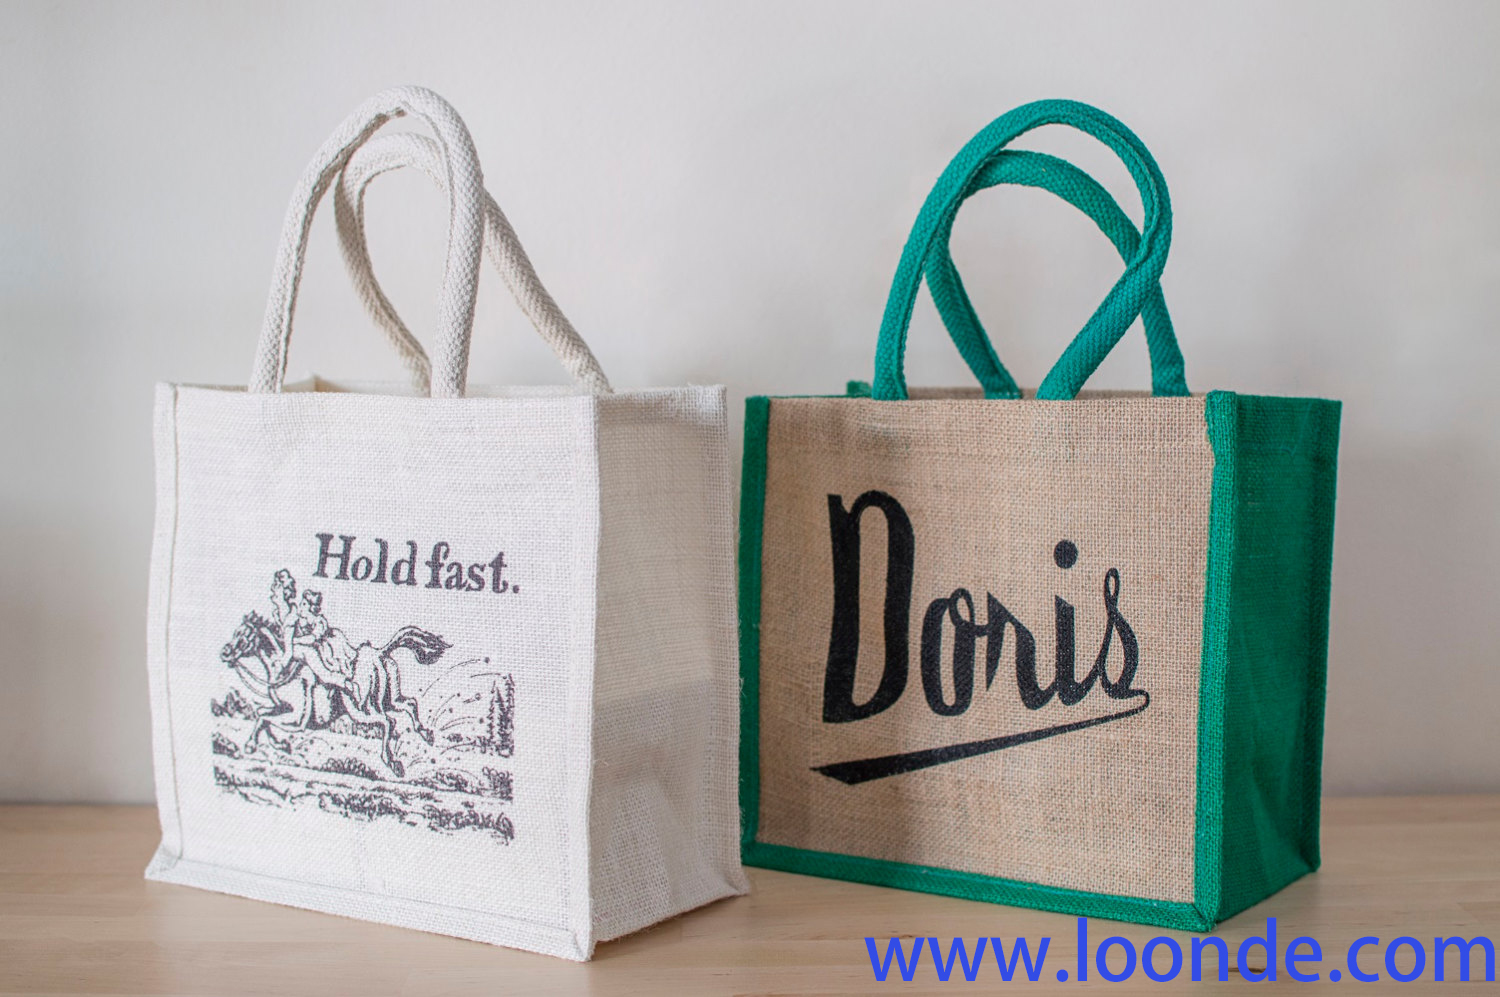 Jute Shopping Bag. Small Jute Bag. Jute Bag With Motto. Doris Bag. Hold Fast Bag. Shopping Tote. Sto